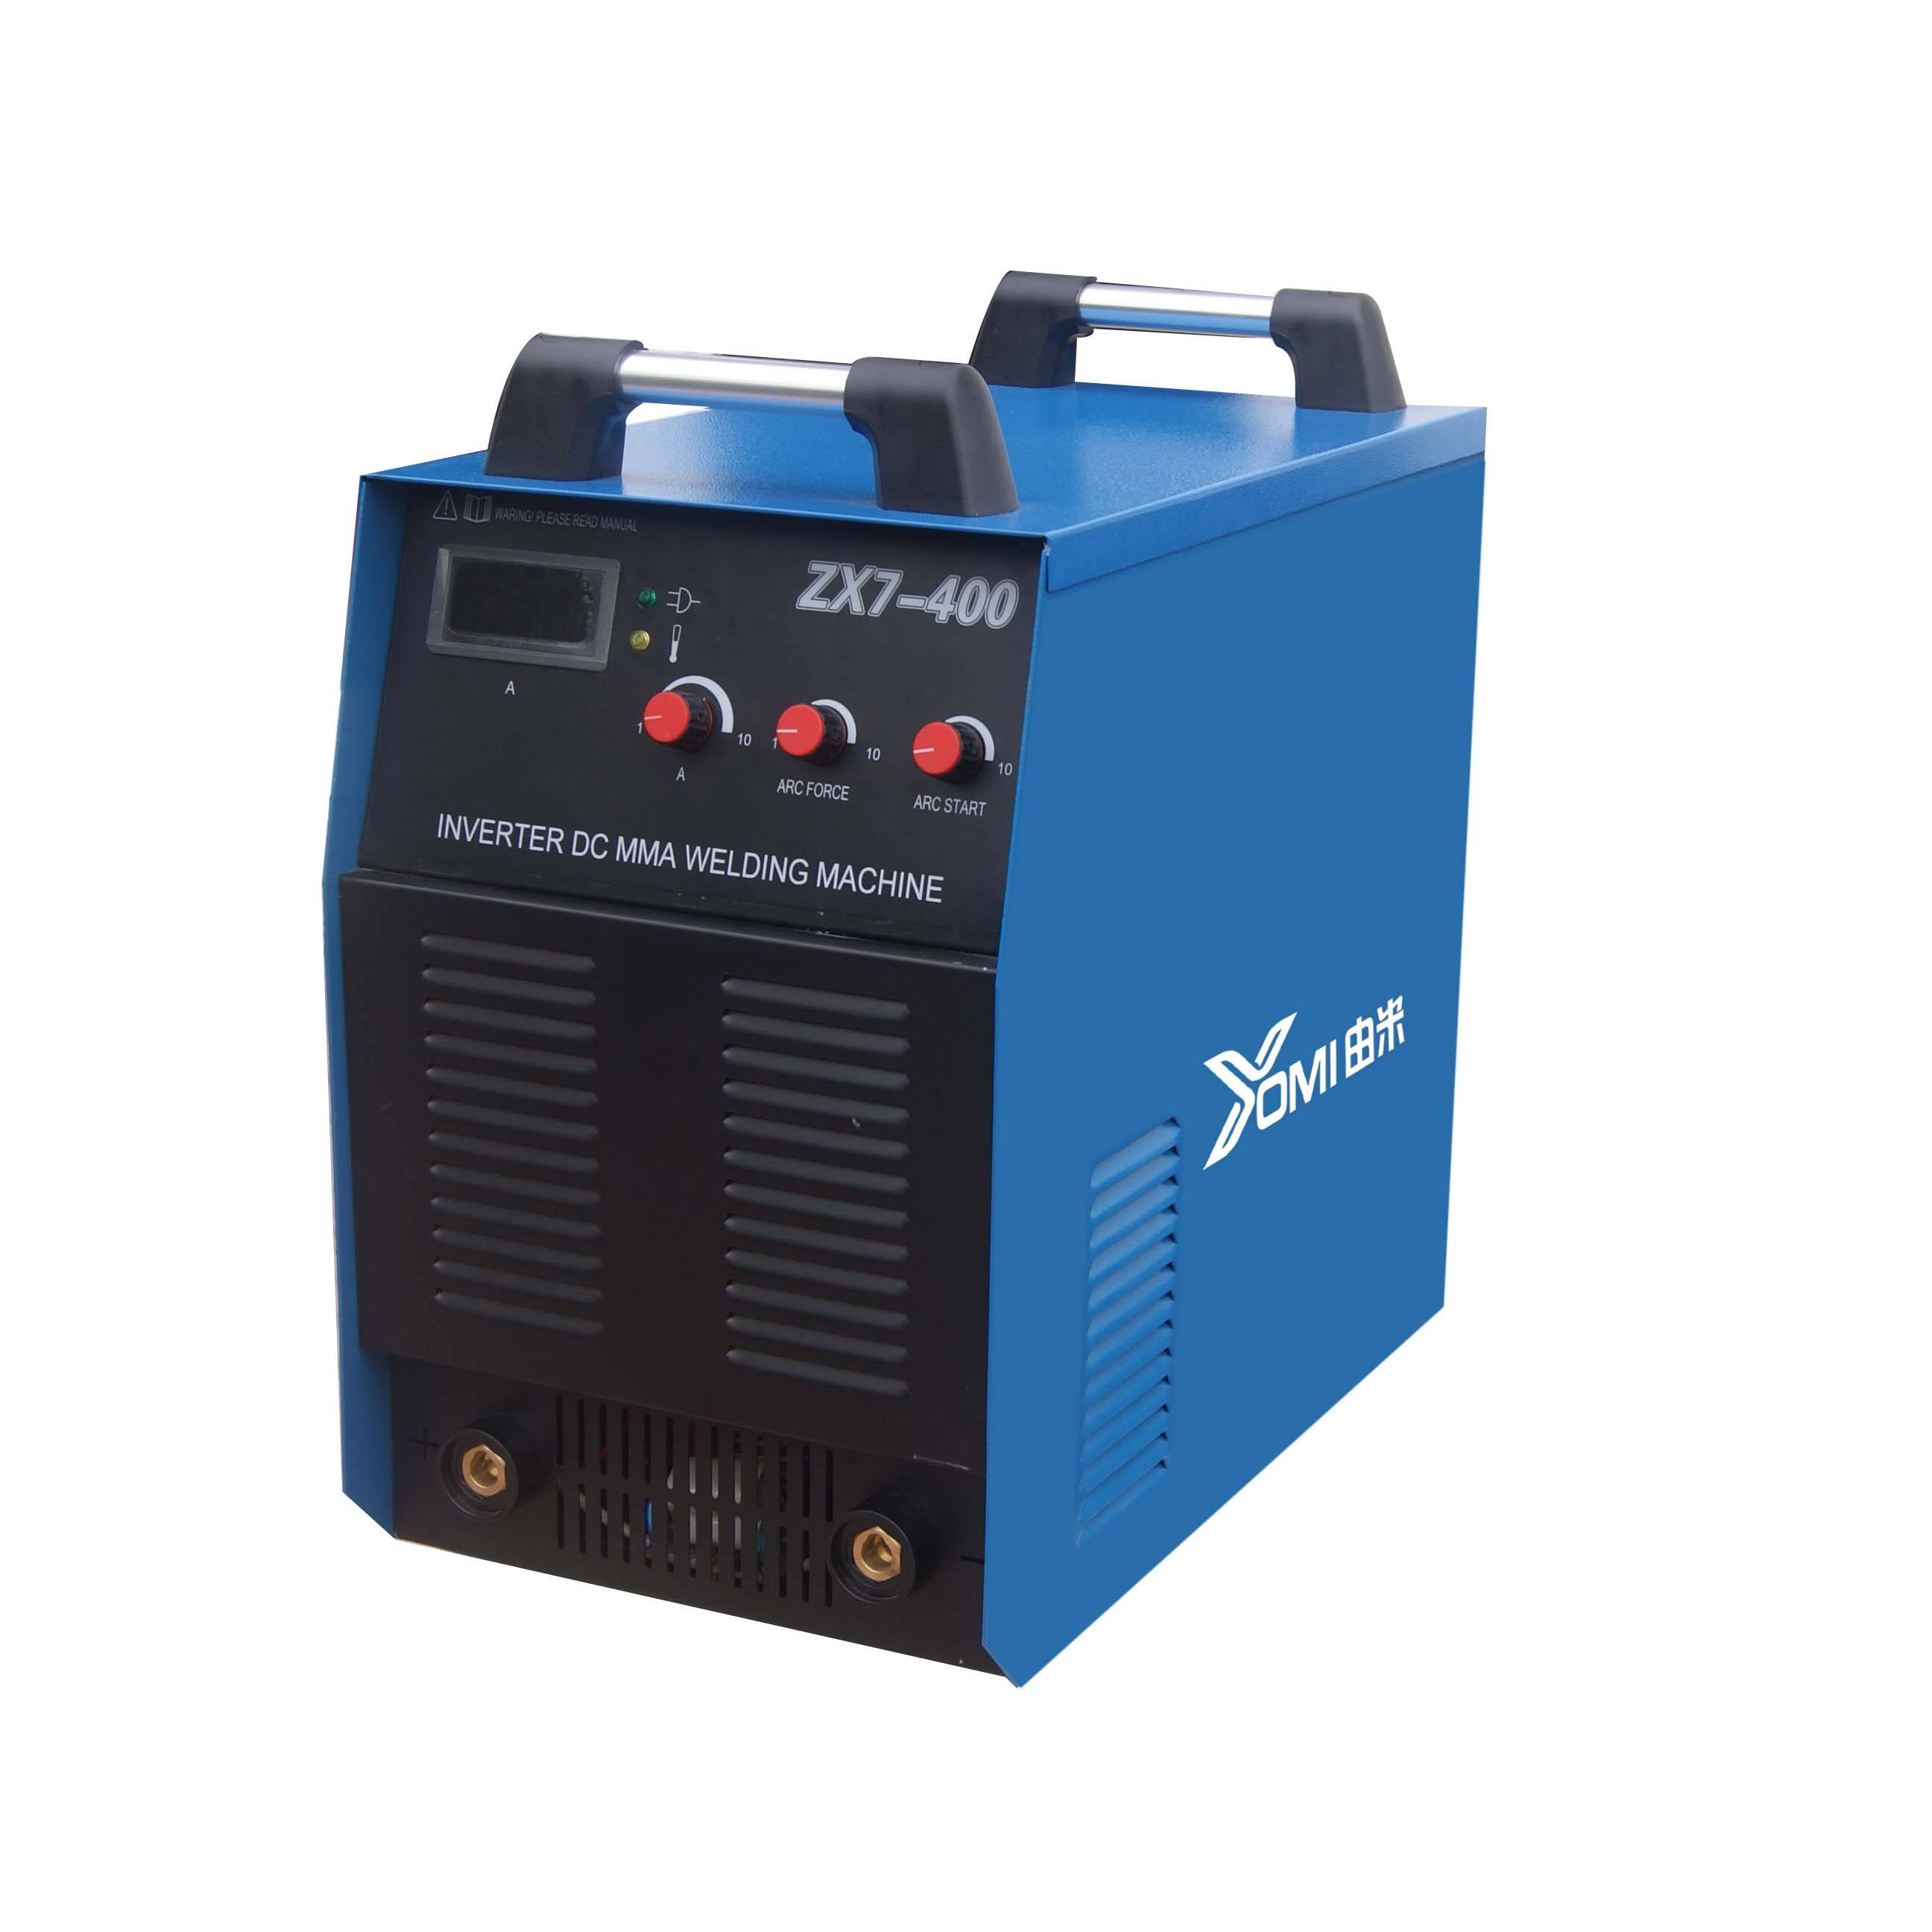 Professional Design Conveyor Roller Welding Machine -